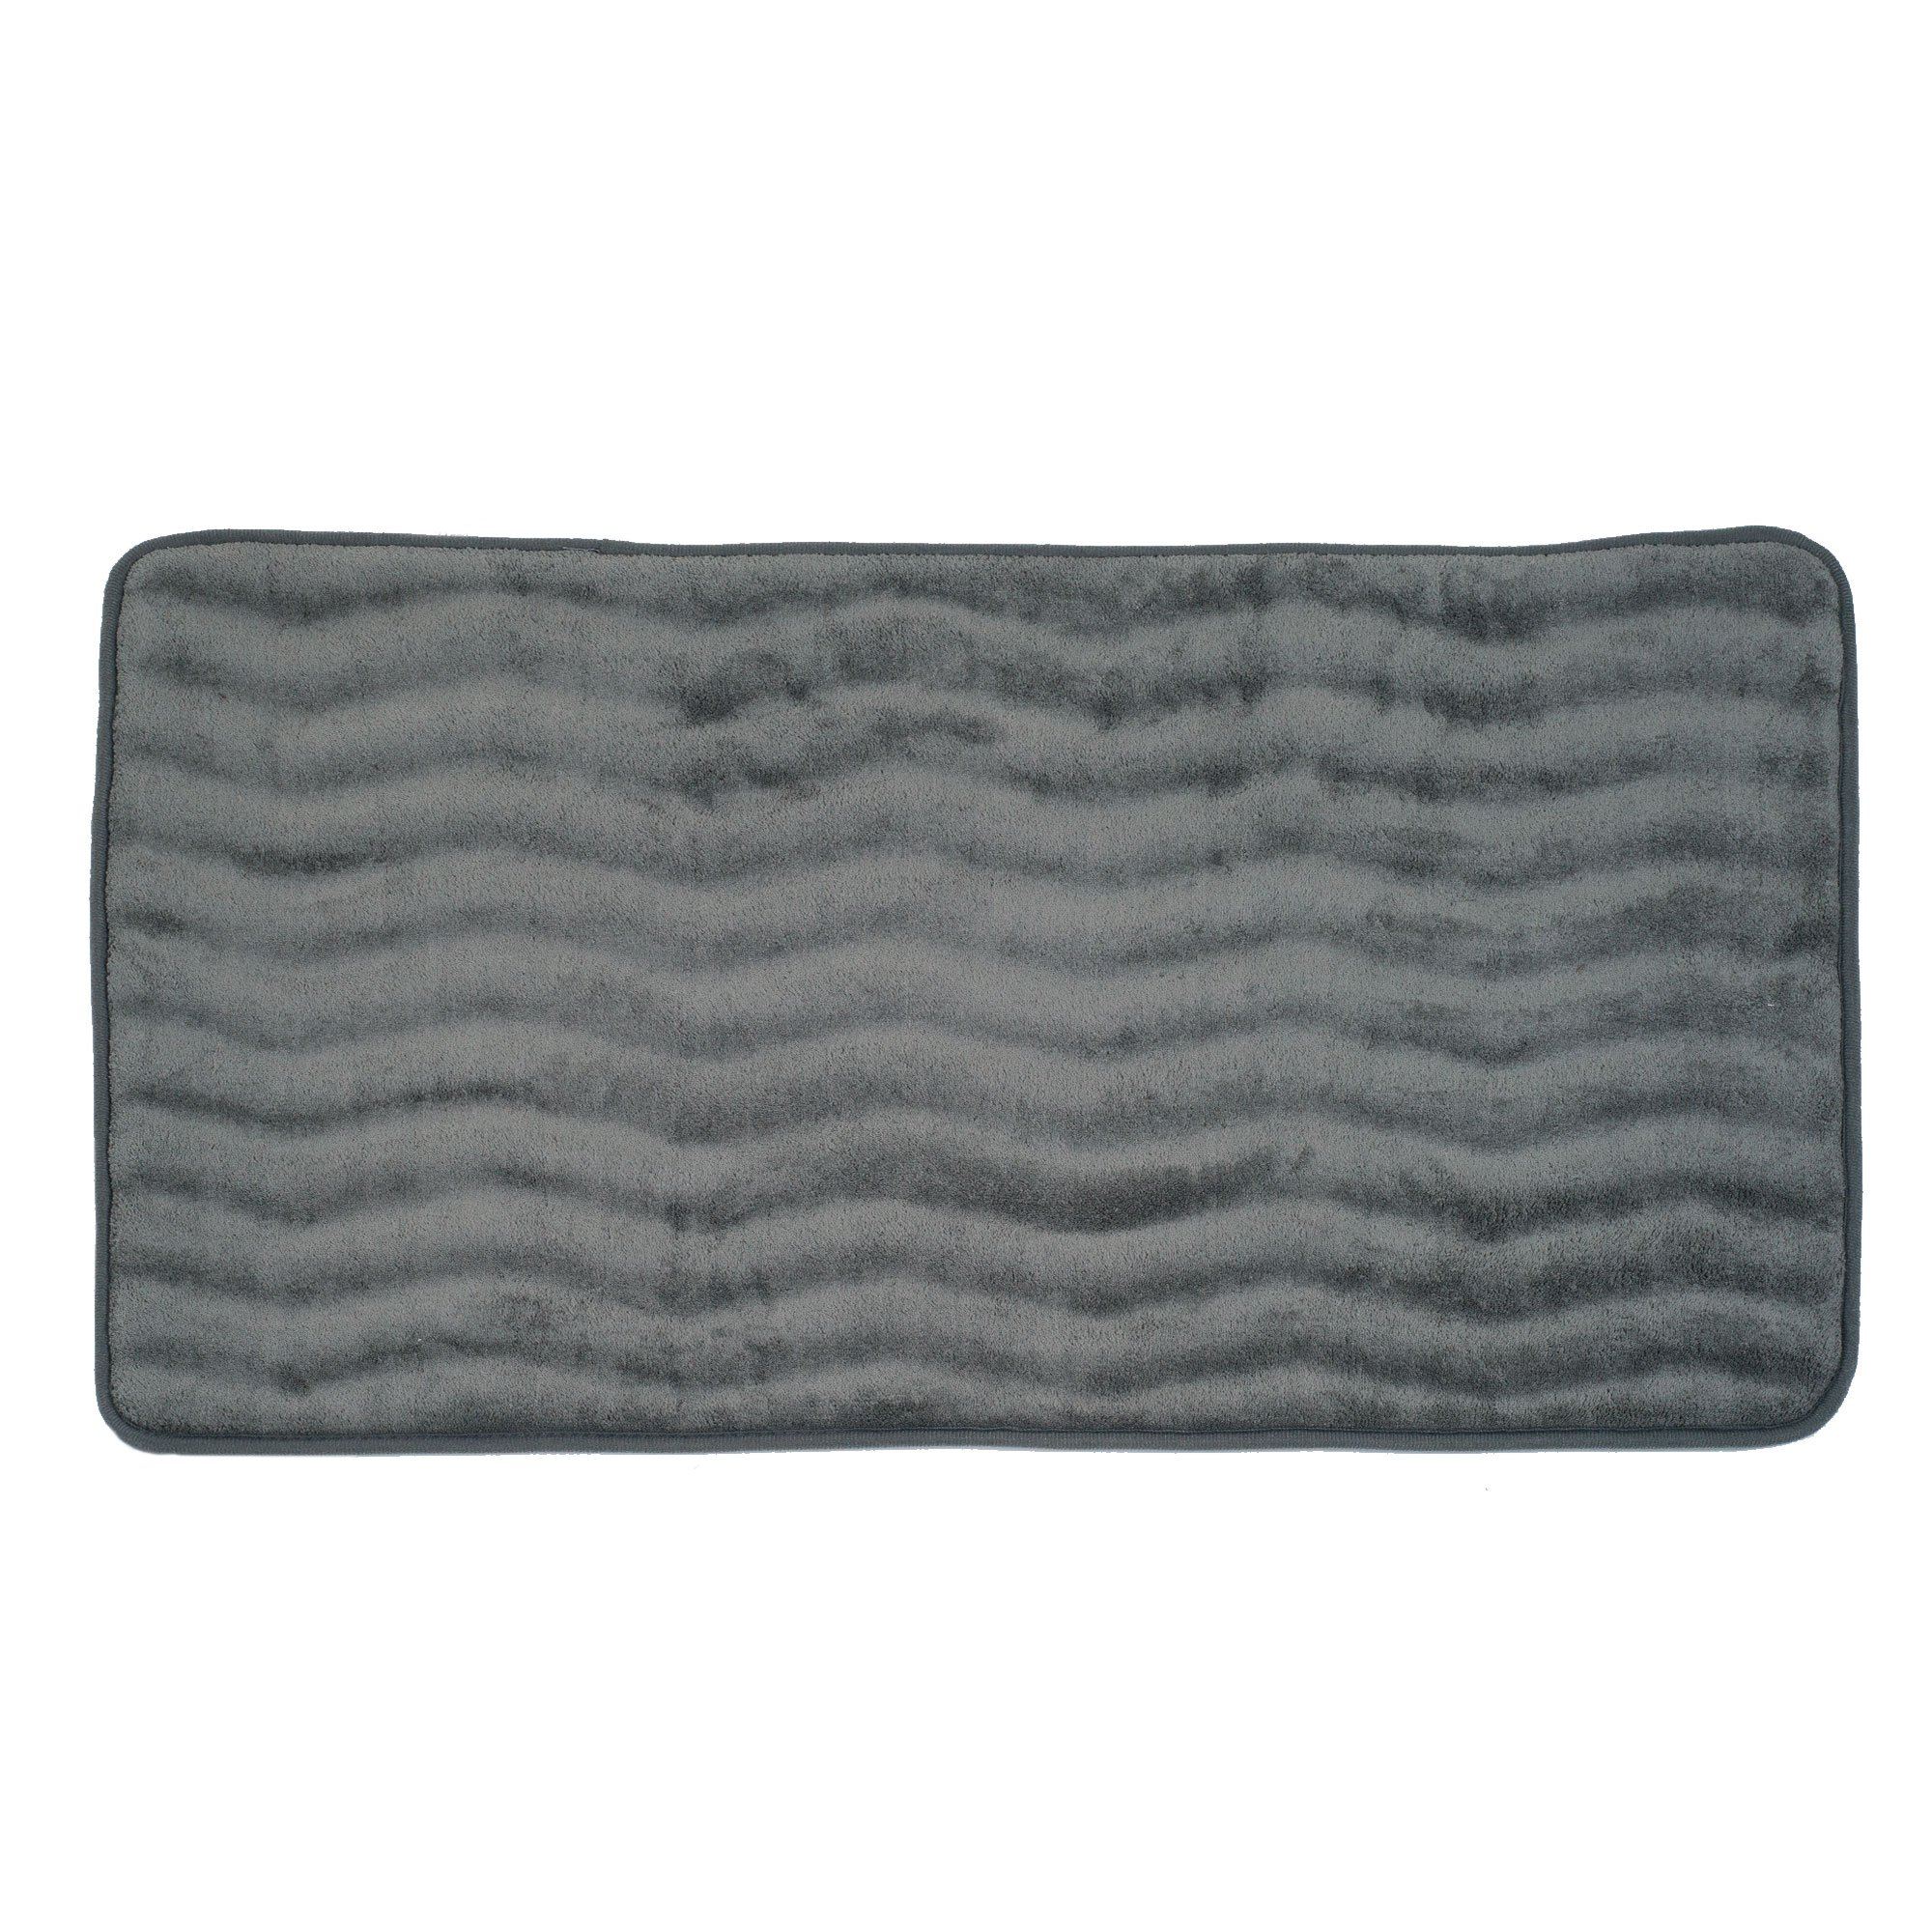 Lavish Home Microfiber Memory Foam Bathmat - Oversized Padded Nonslip Accent Rug for Bathroom, Kitchen, Laundry Room, Wave Pattern (Platinum) by Lavish Home